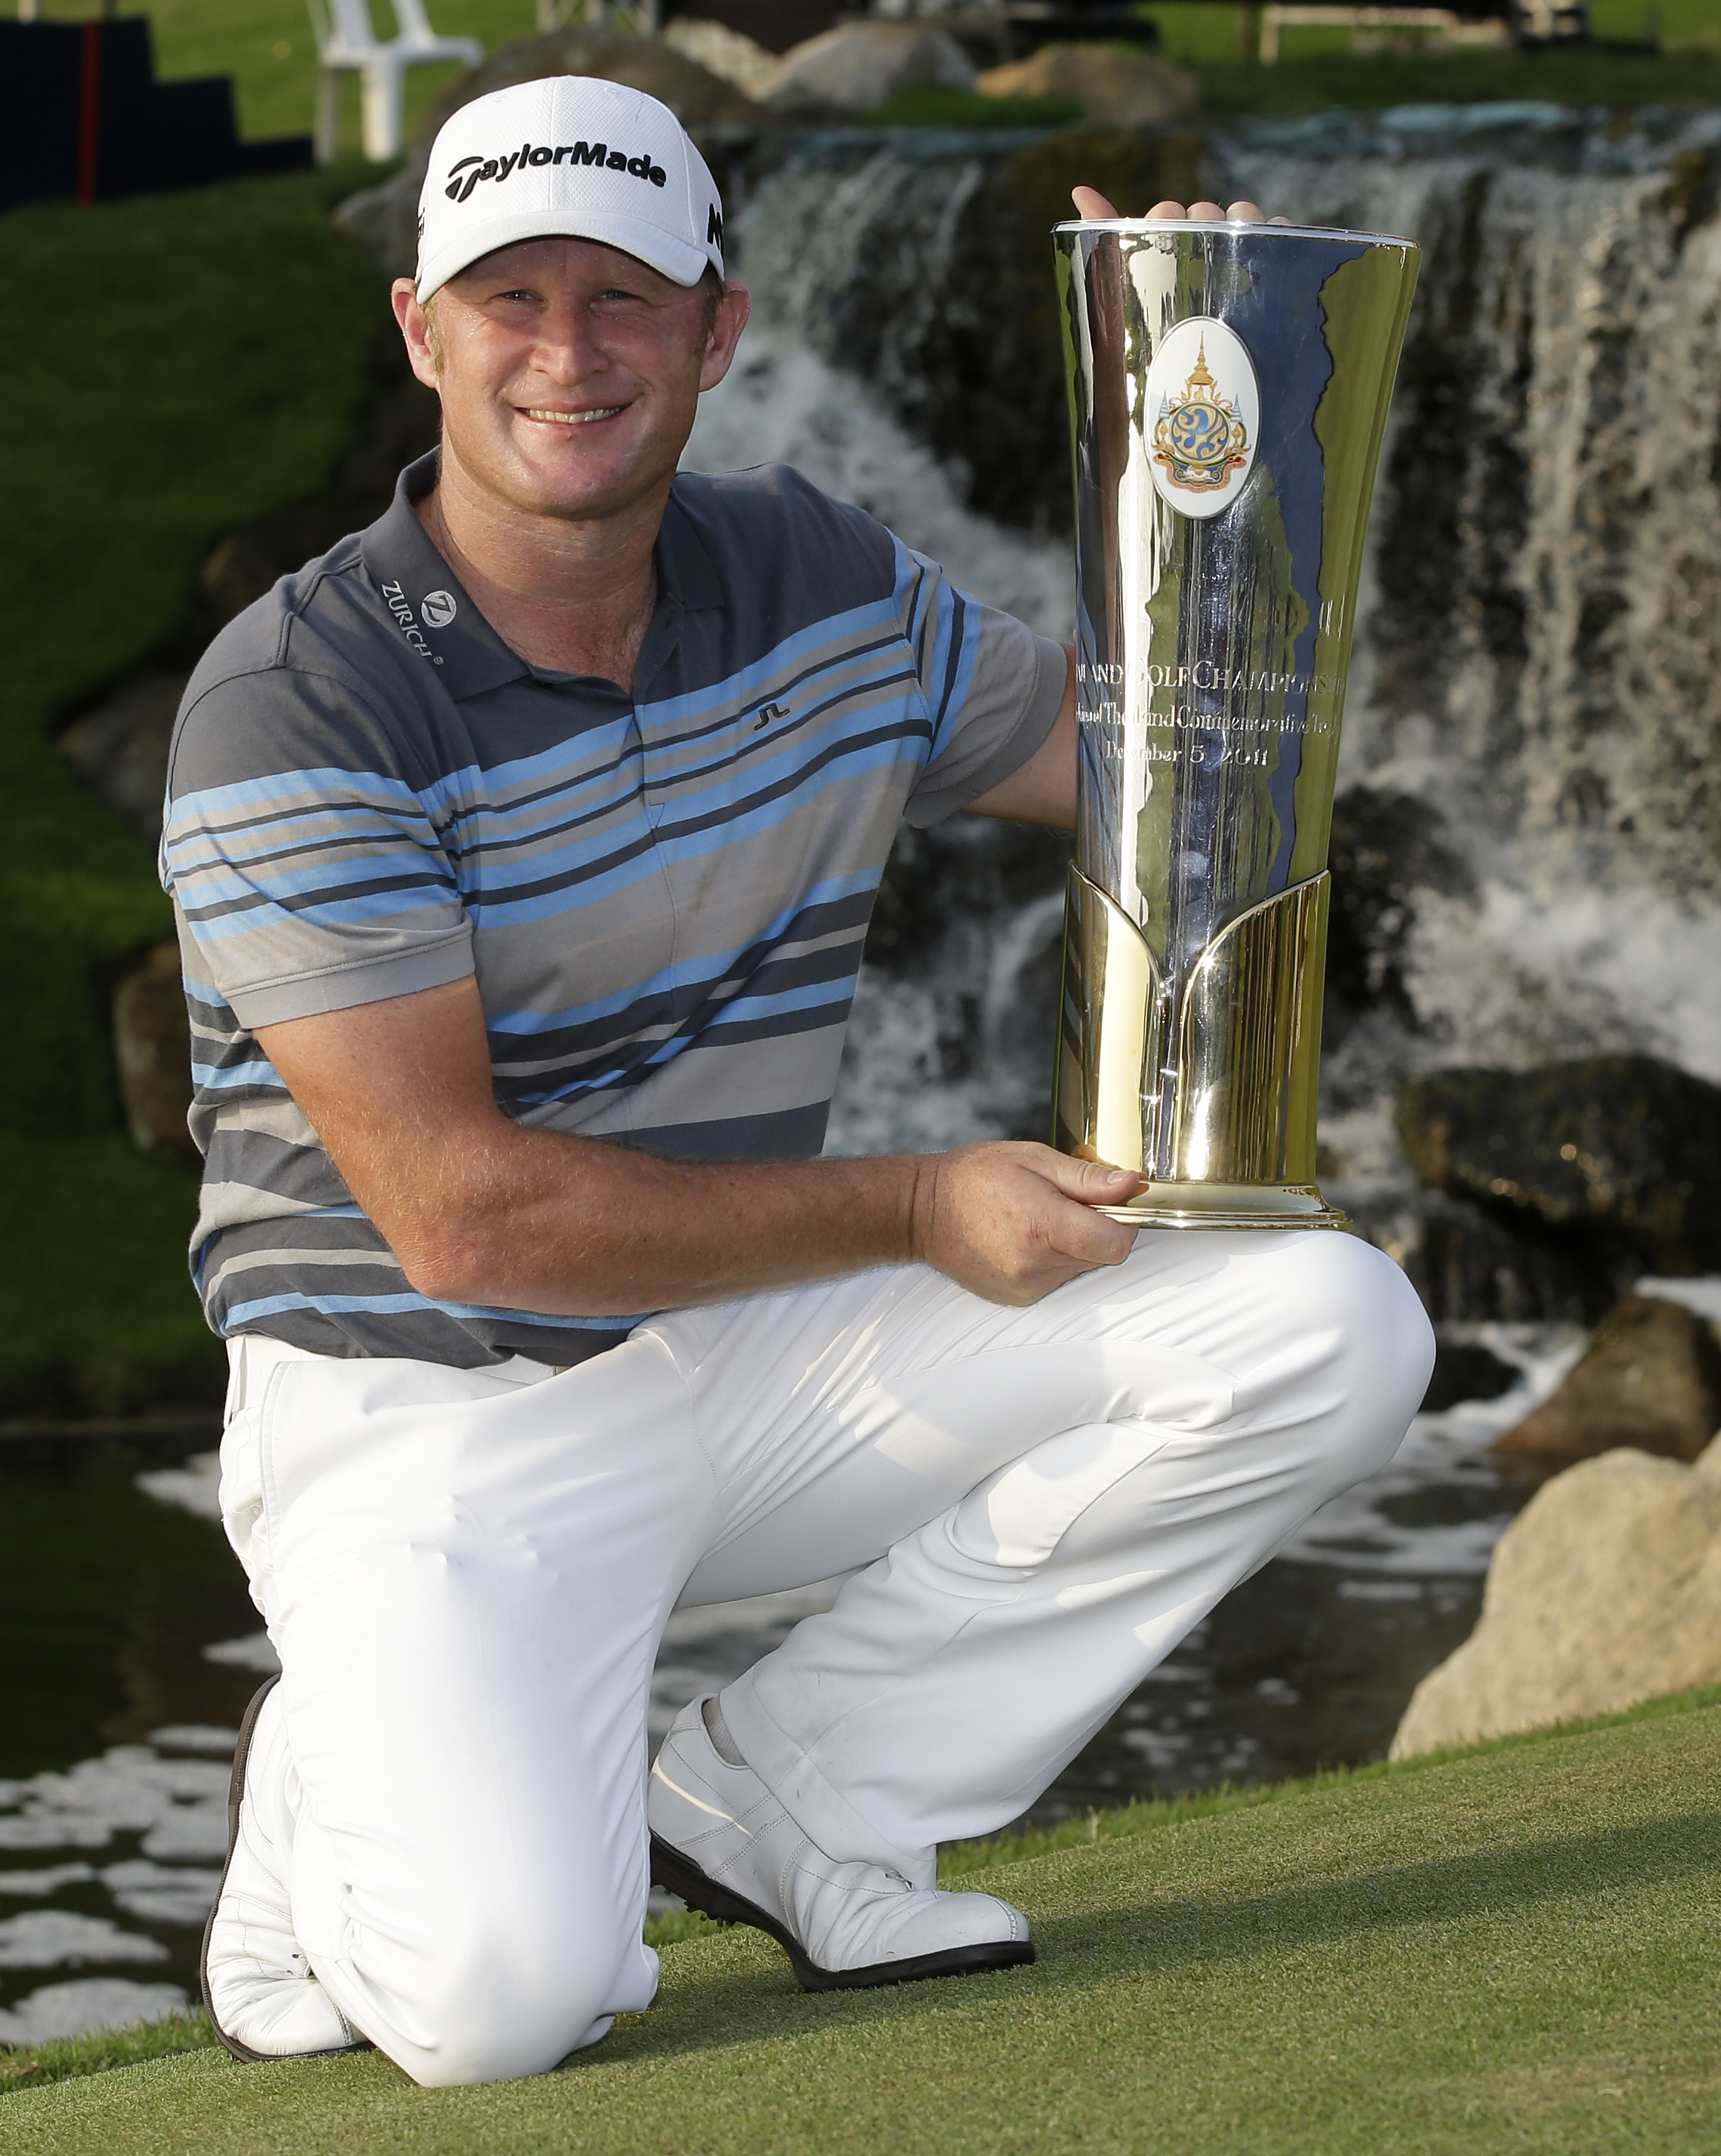 Jamie Donaldson of Wales holds his trophy after winning the Thailand Golf Championship at the Amata Spring Country Club, Chonburi, Thailand, Sunday, Dec. 13, 2015. (AP Photo/Mark Baker)